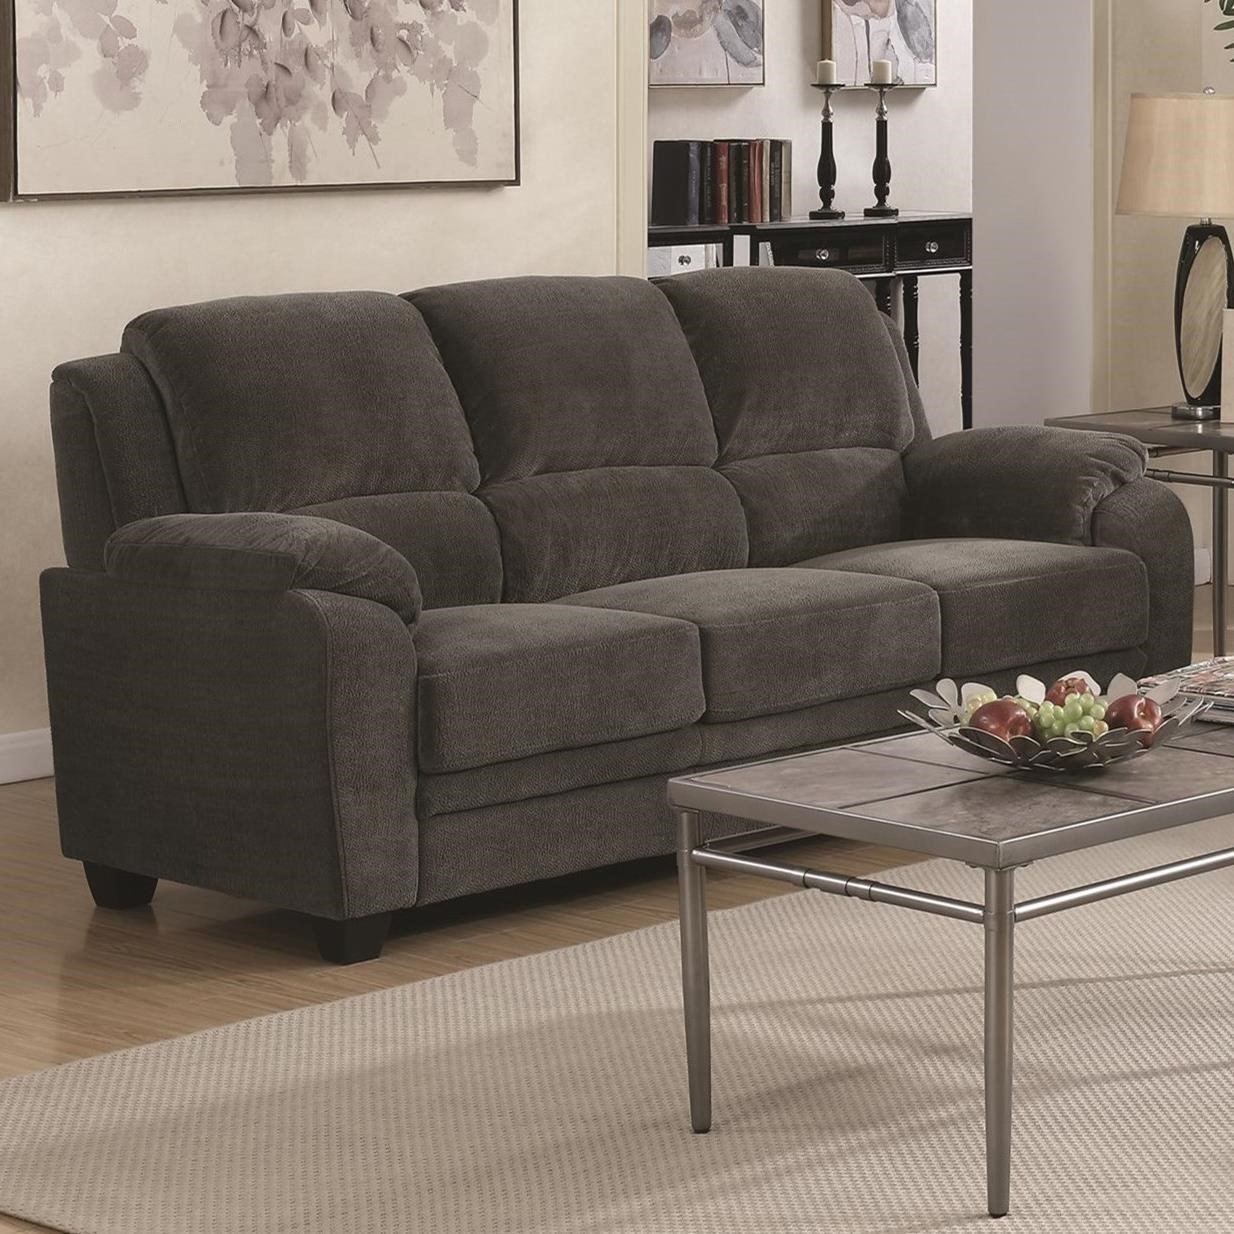 City Furmiture: Coaster Northend Casual Sofa With Velvet-Like Fabric